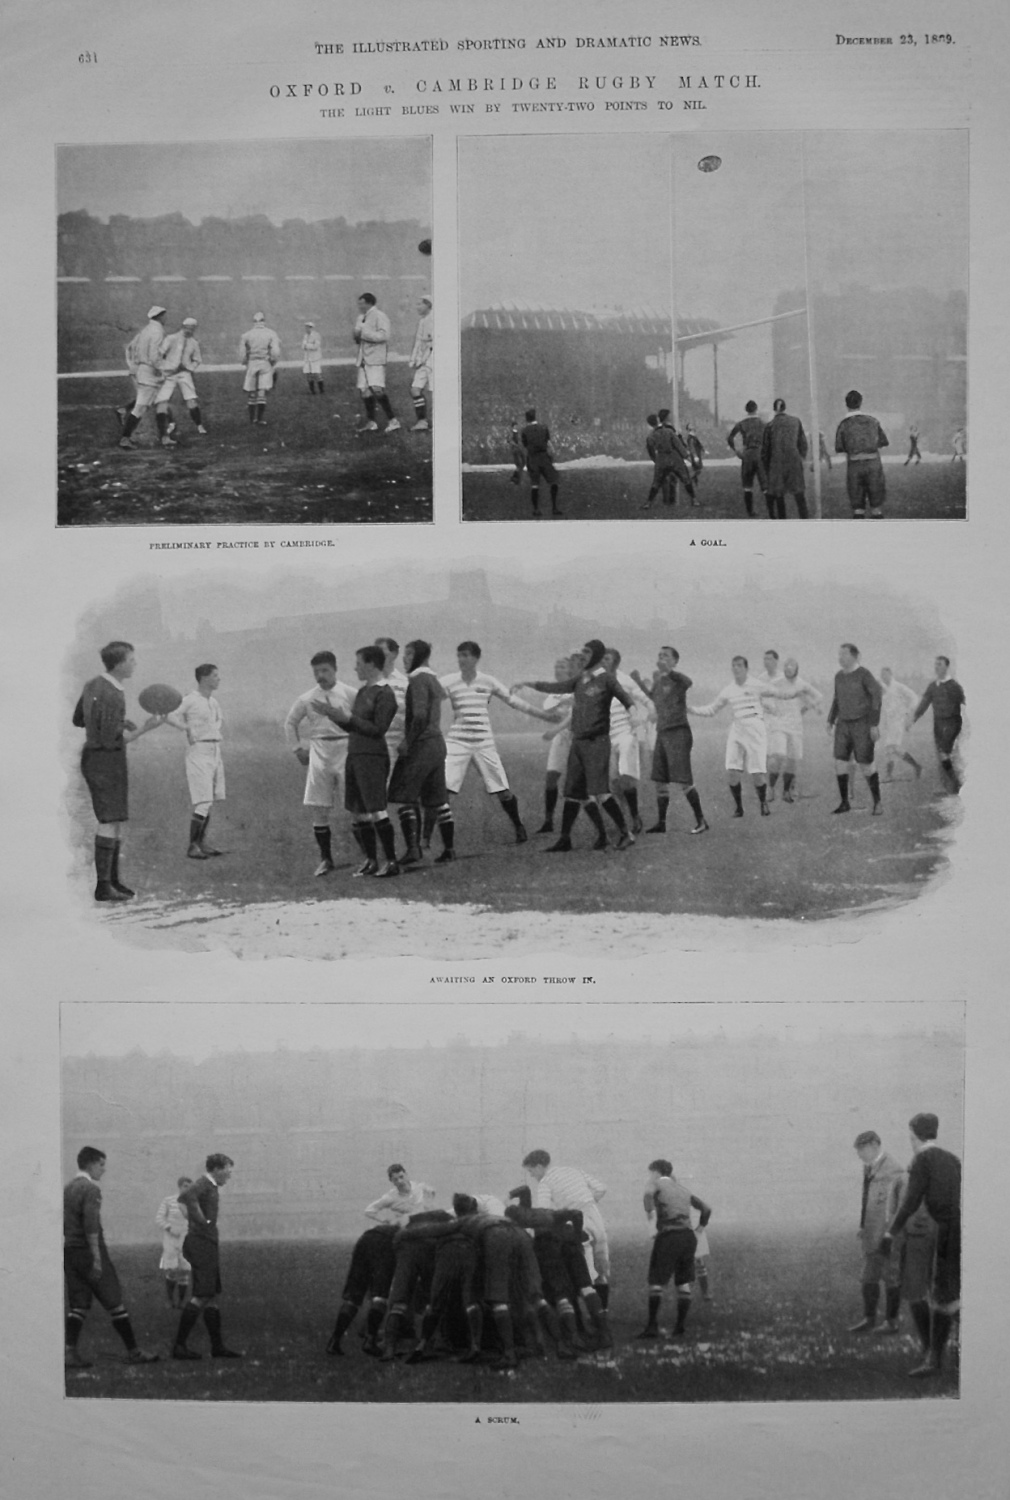 Oxford v. Cambridge Rugby Match. 1899